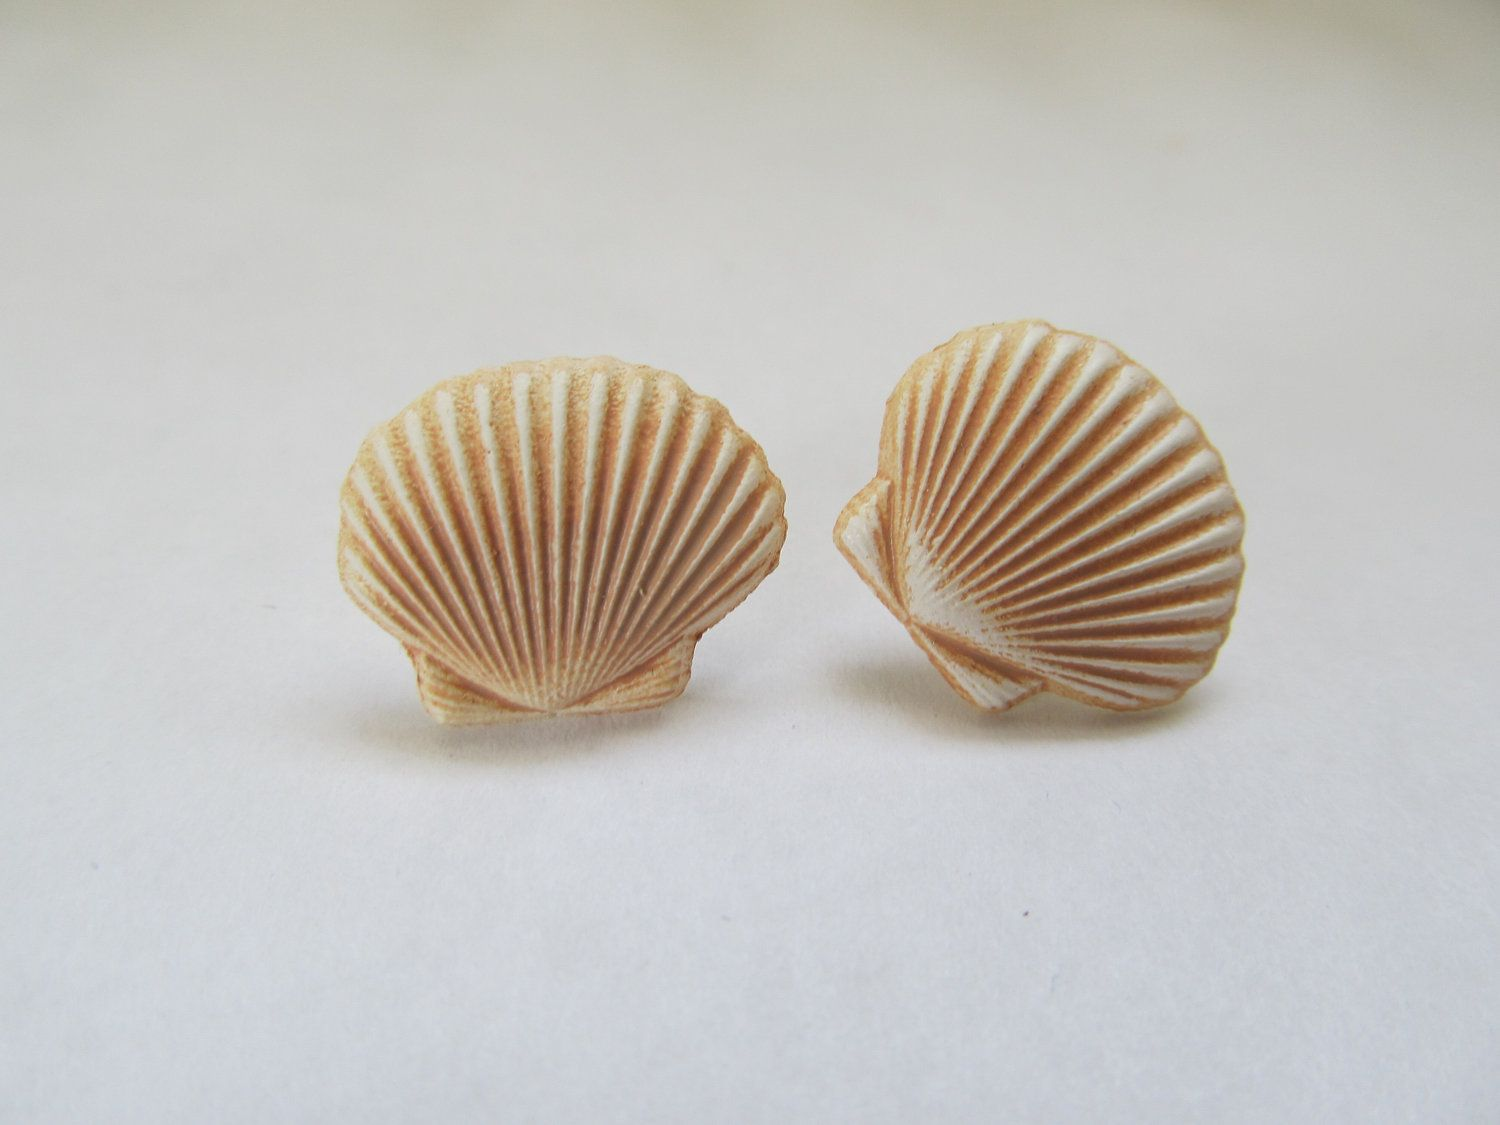 from beach shell ariel for jewelry earrings mermaid gold earring conch item sea stud in women kinitial seashell silver studs fashion nautical